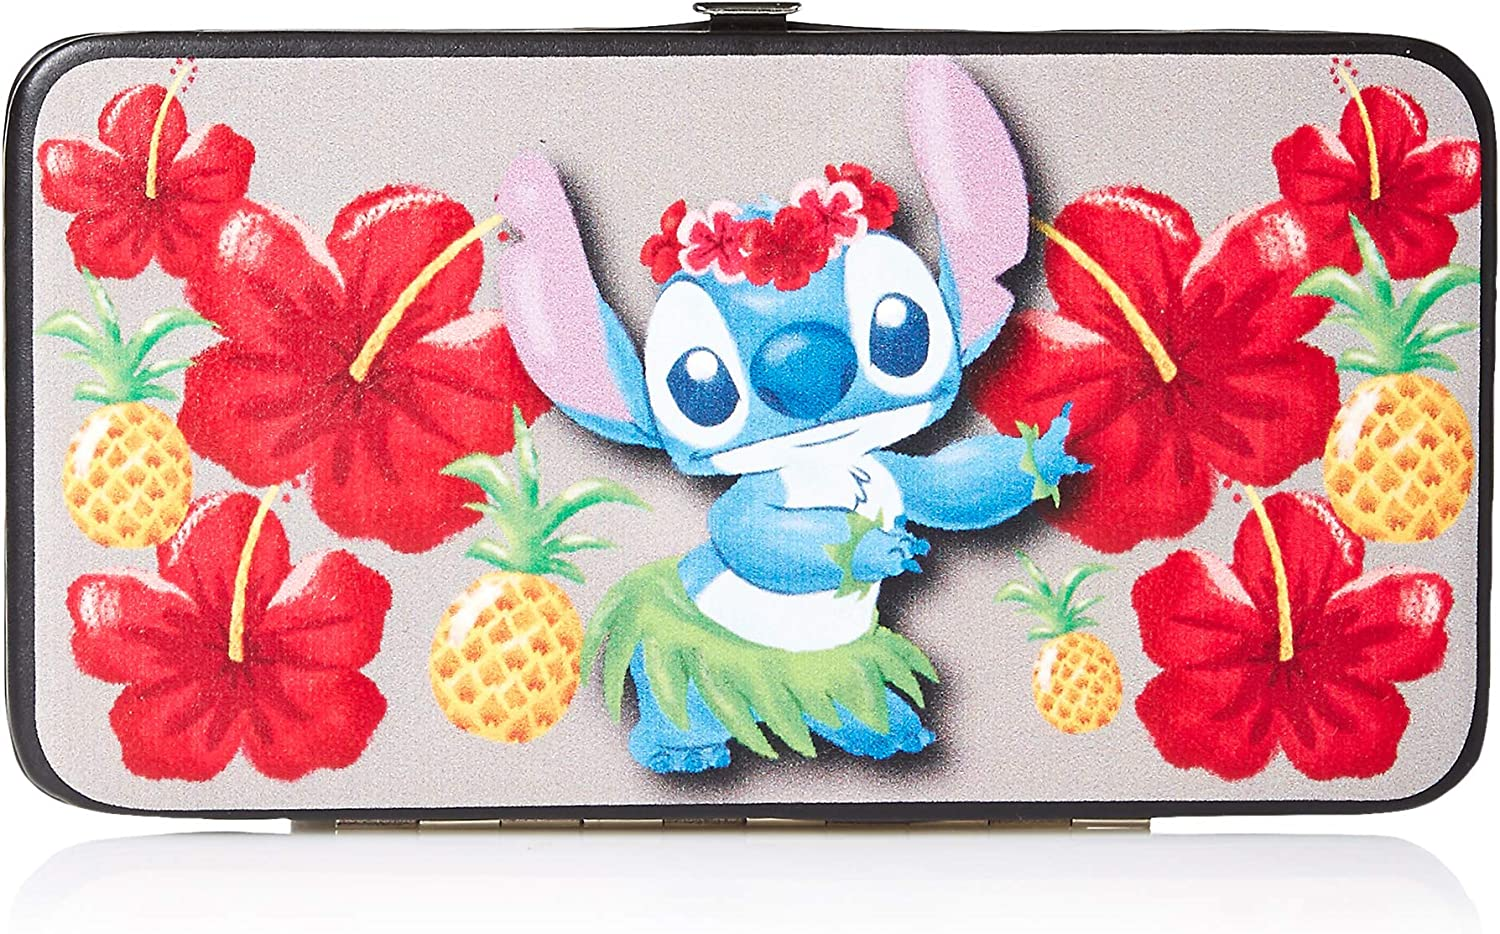 Buckle-Down Women's Hinge Wallet-Lilo & Stitch, 7